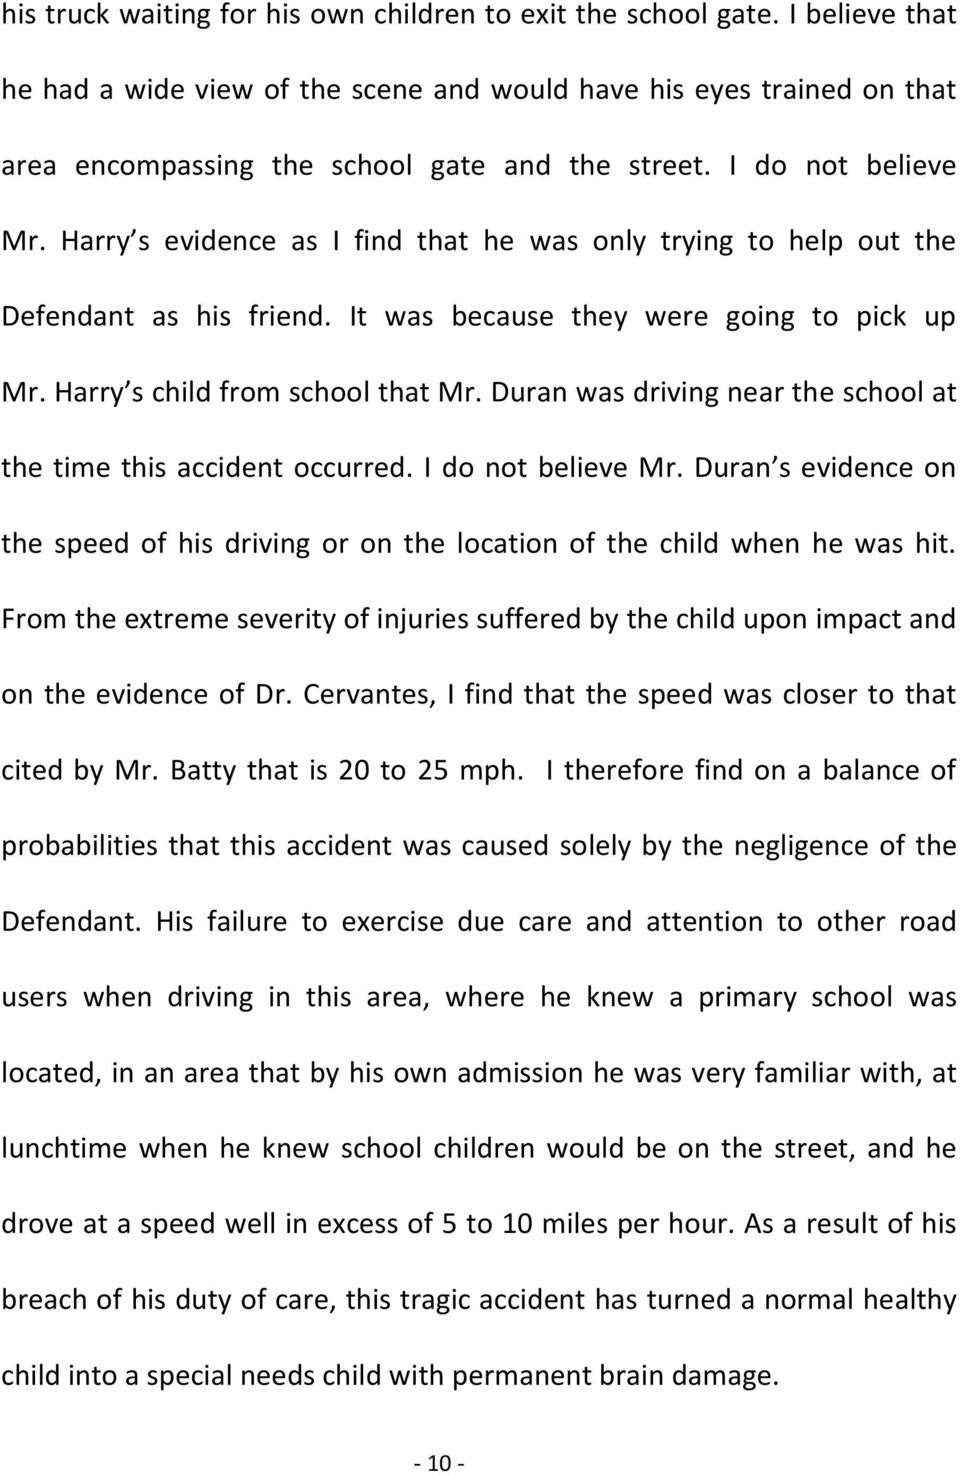 Duran was driving near the school at the time this accident occurred. I do not believe Mr. Duran s evidence on the speed of his driving or on the location of the child when he was hit.